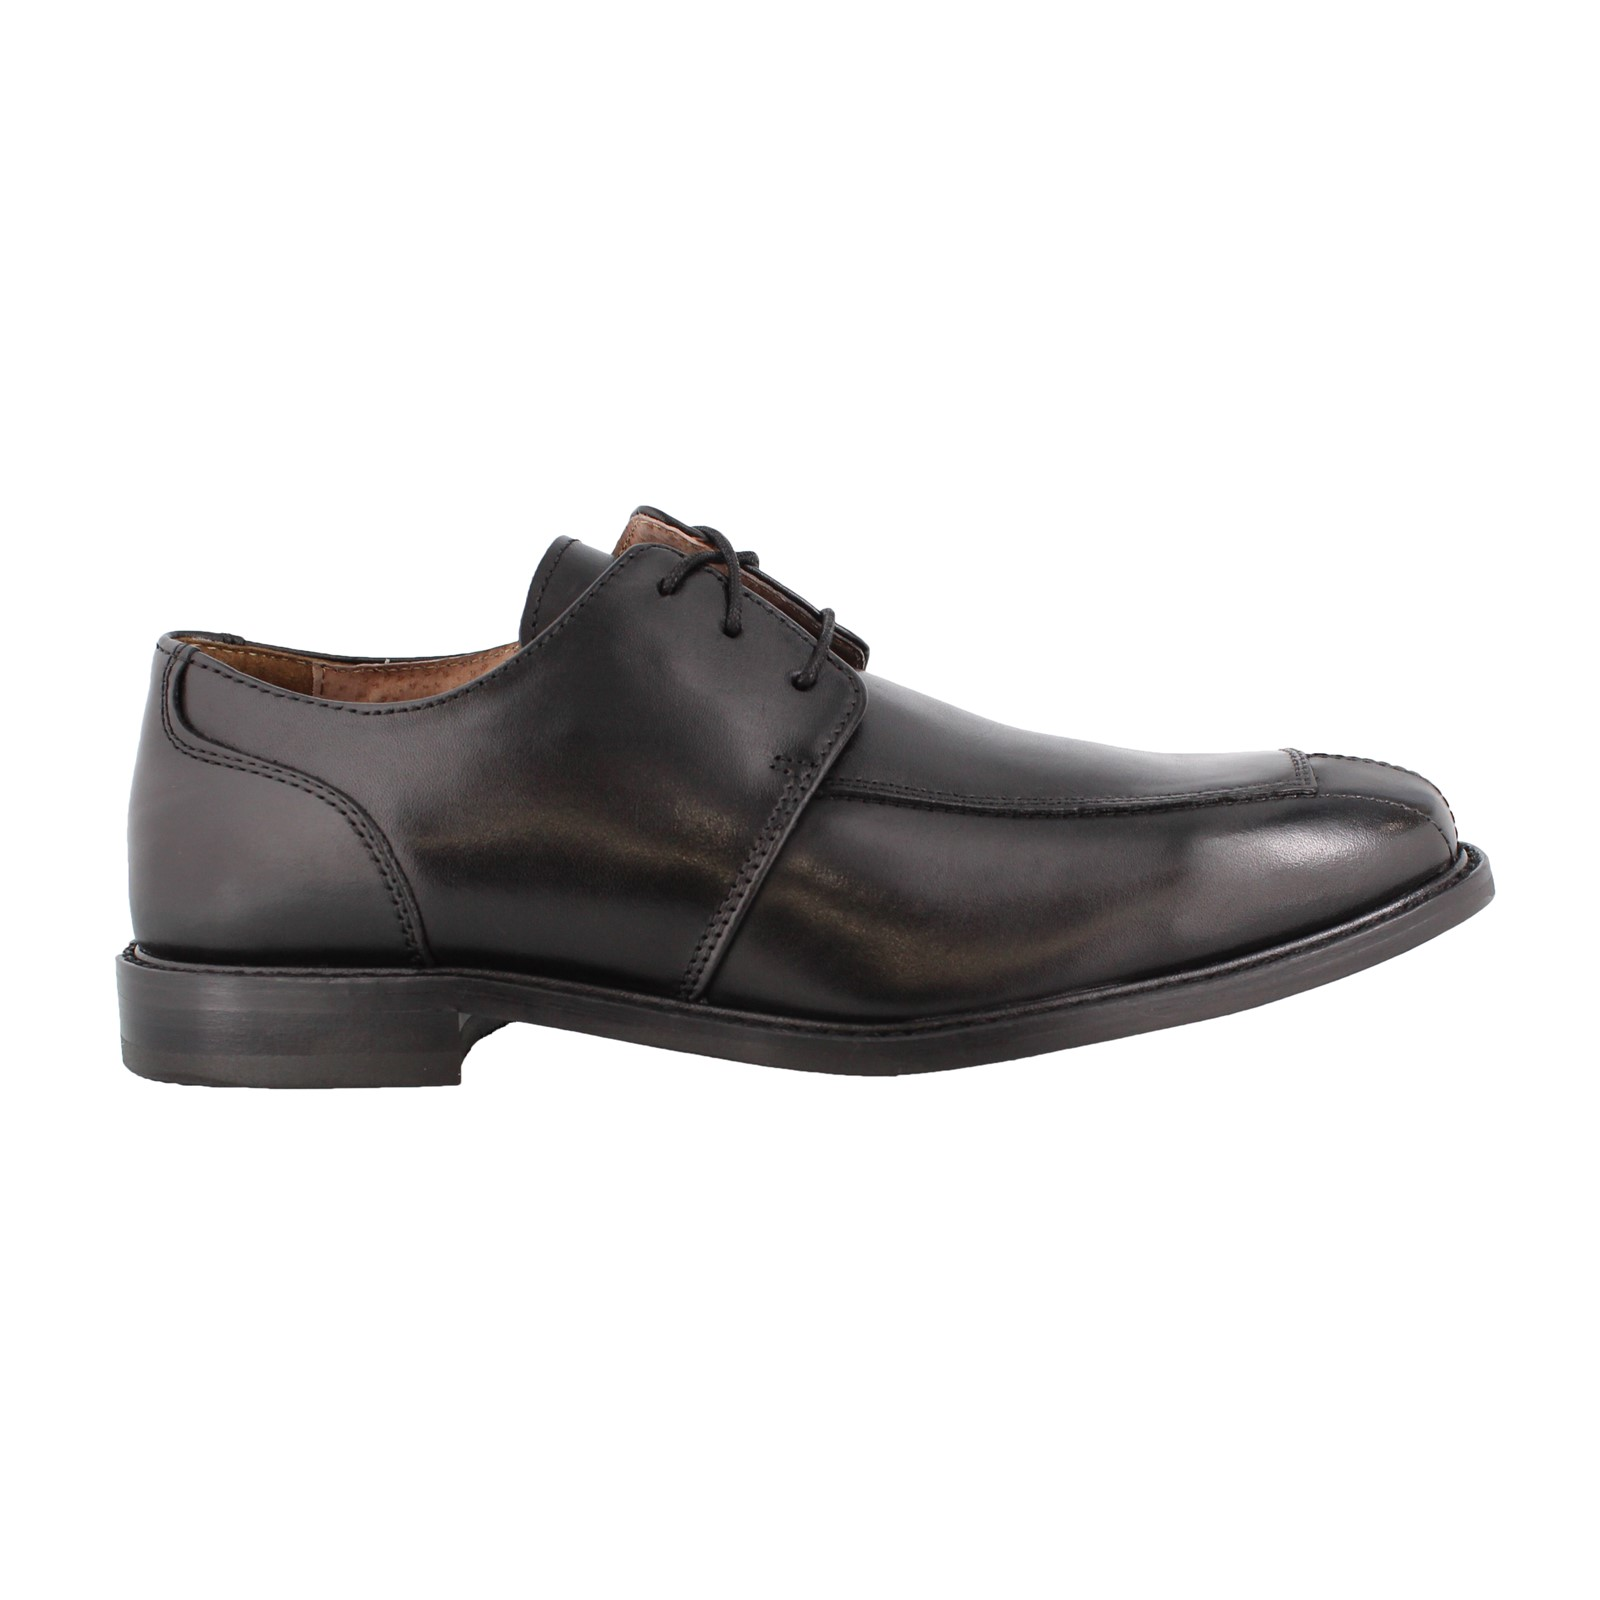 Men's Florsheim, Ashlin Lace up Dress Shoes